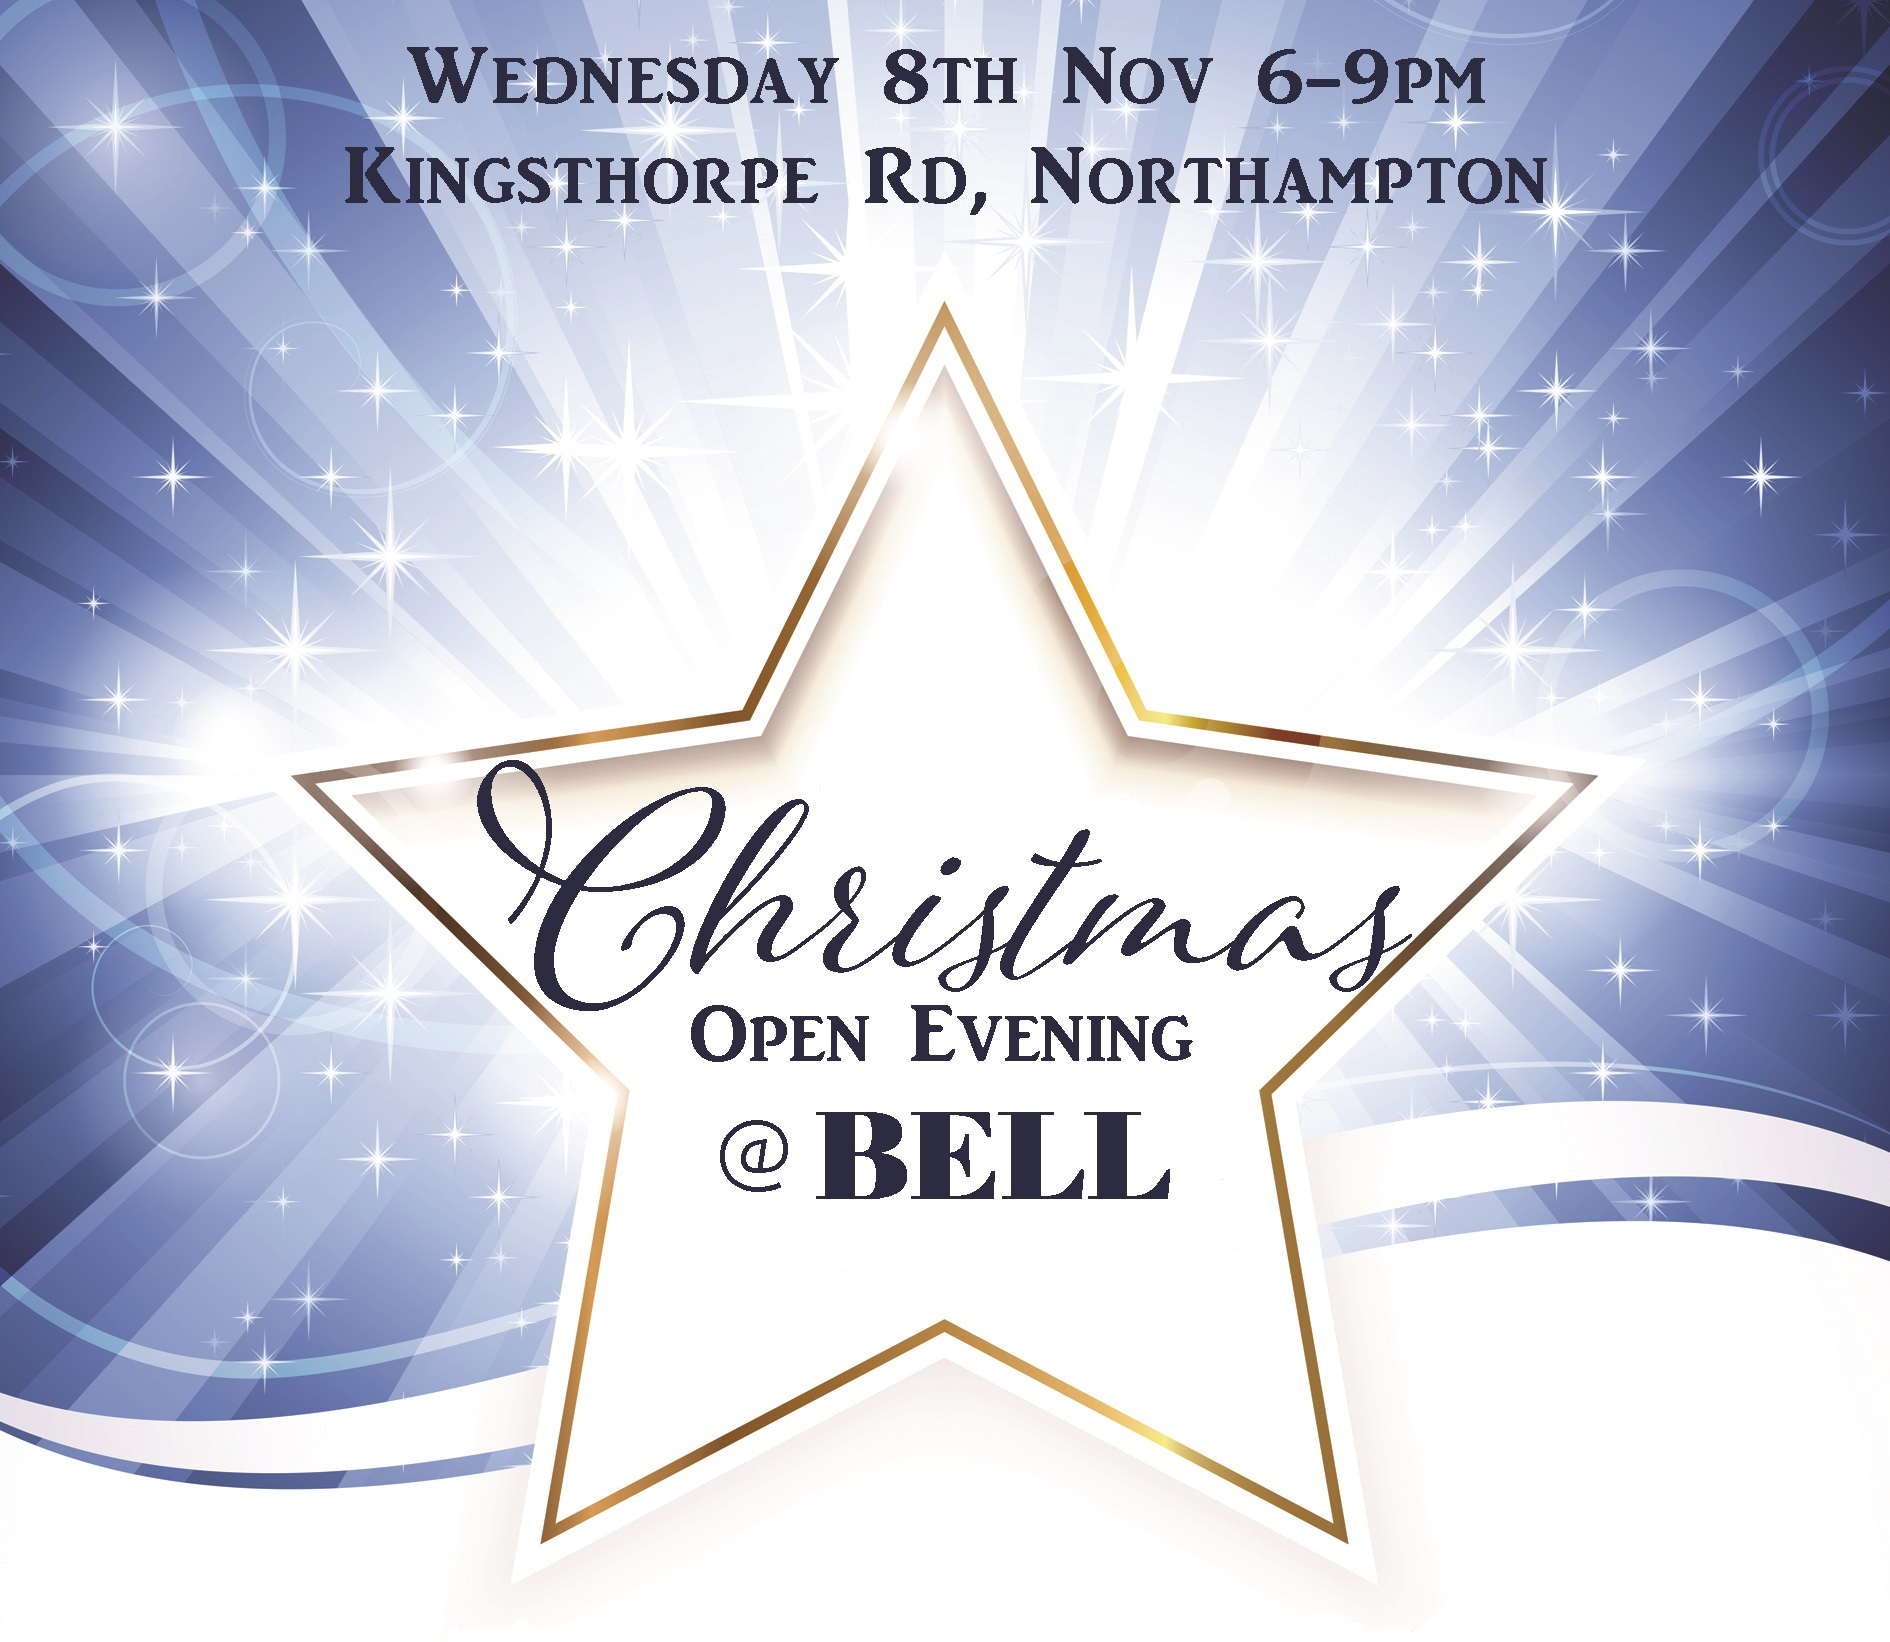 Bell's Christmas Open Evening Party Bell